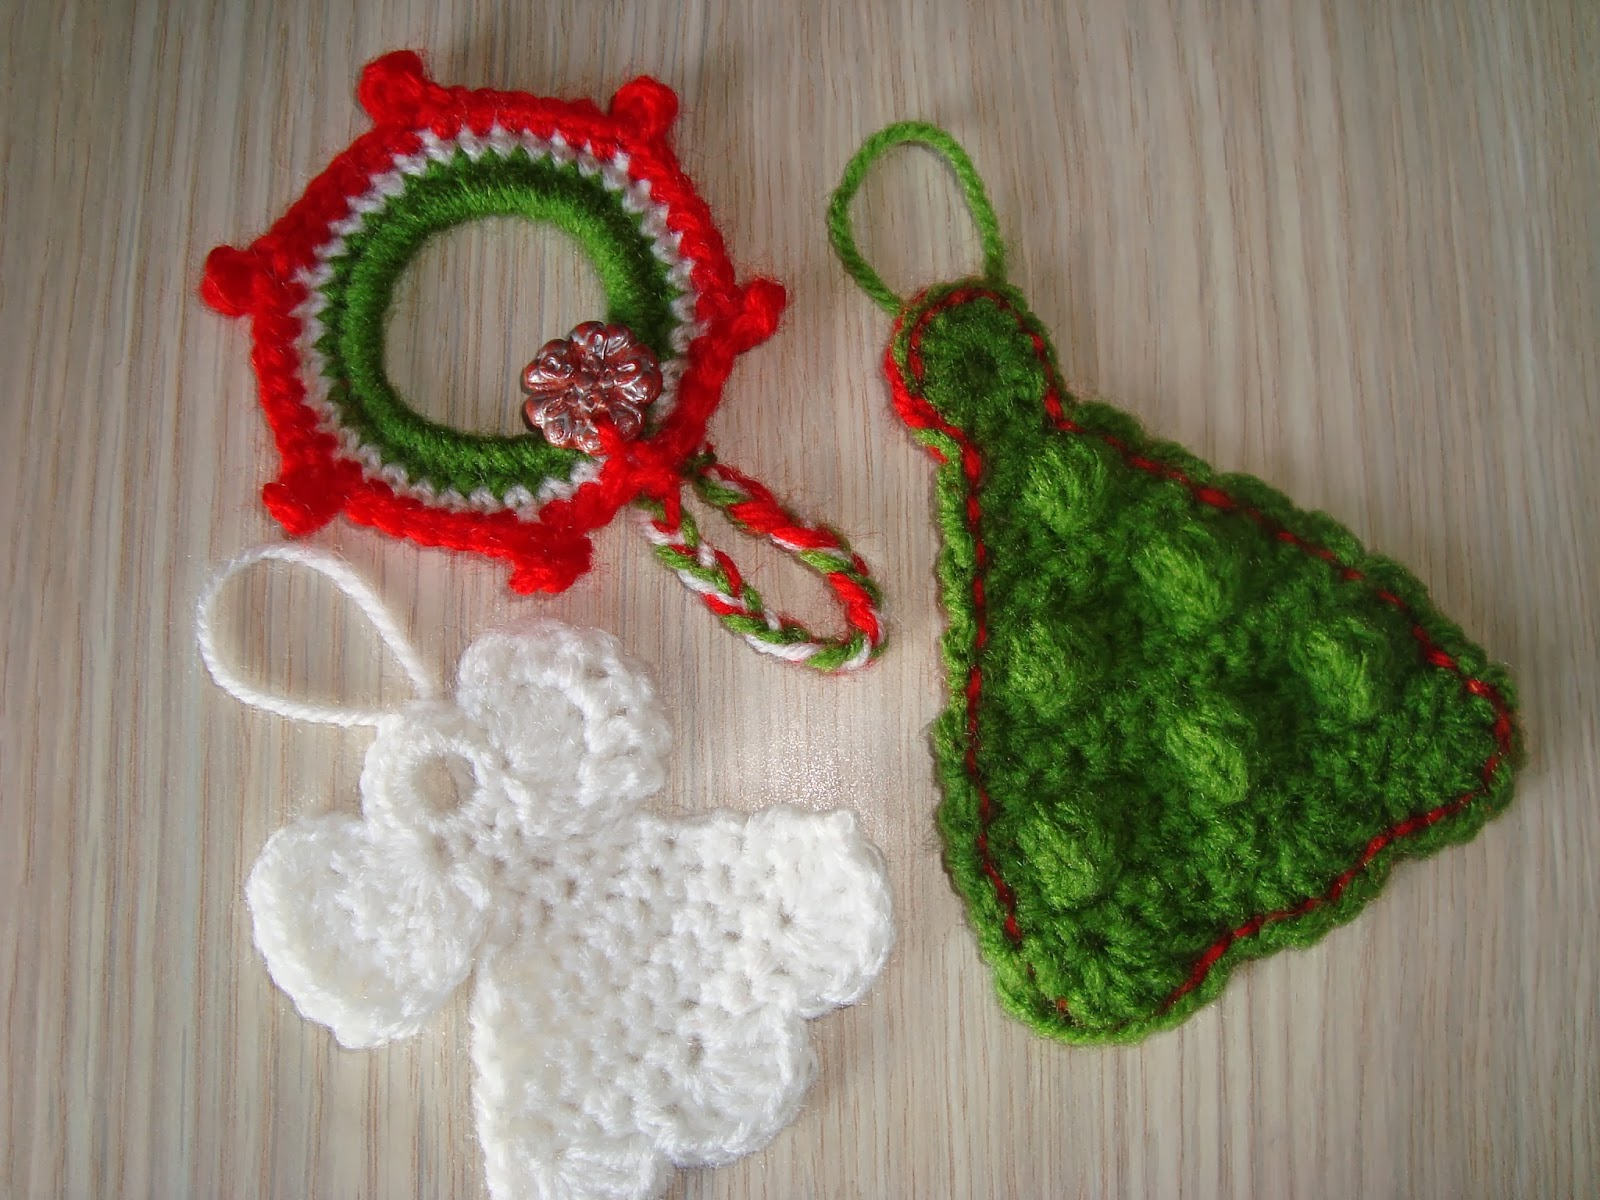 Free Crochet Pattern Christmas : Handmade by Camelia: Pattern: Three Ornaments Crocheted ...